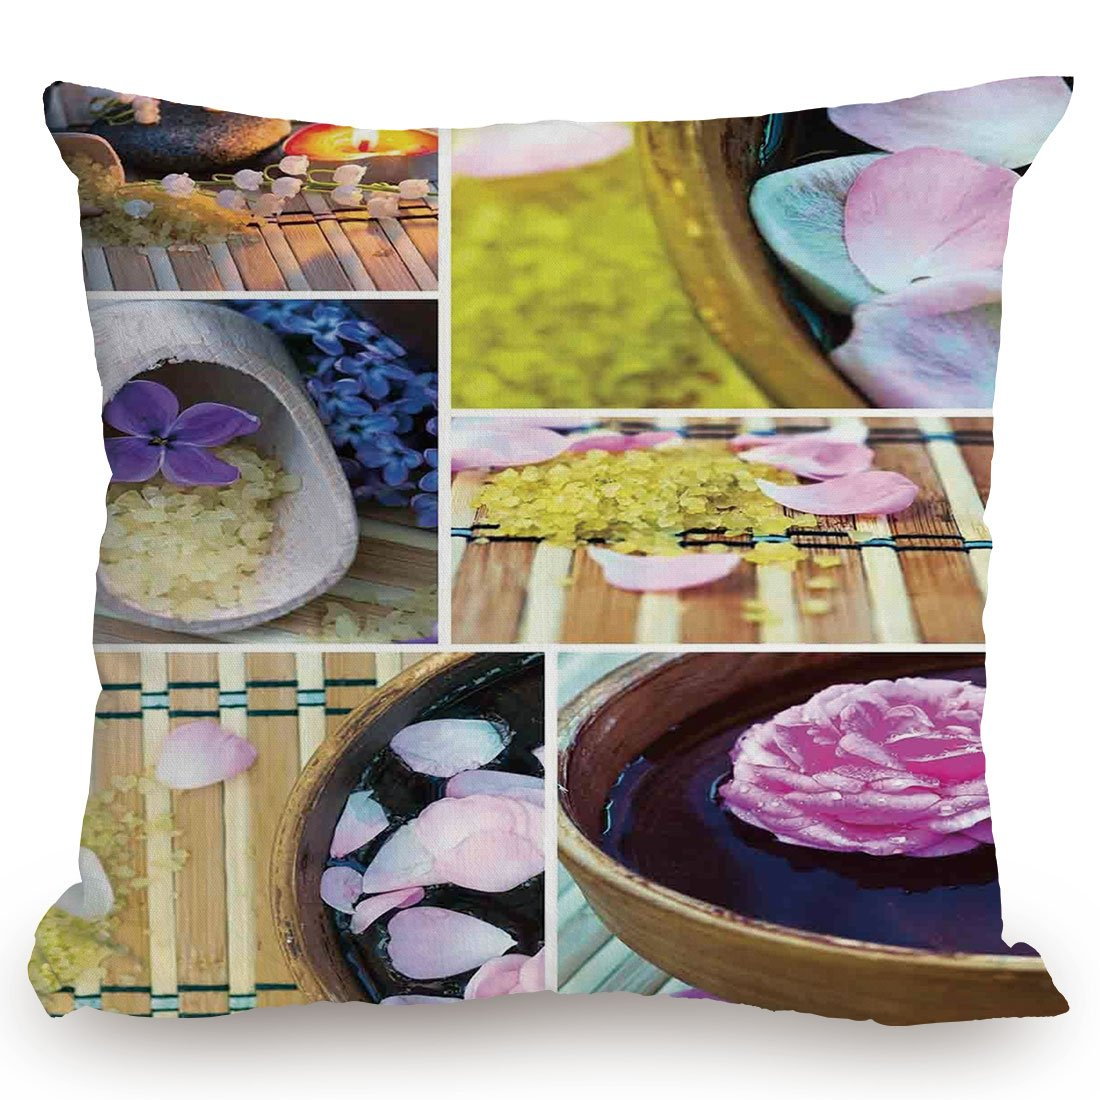 Throw Pillow Cushion Cover,Spa,Spa Organic Cosmetics Theme Wooden Bowl Petals Lavender Candle Pebbles Therapy Oil,Purple Brown,Decorative Square Accent Pillow Case